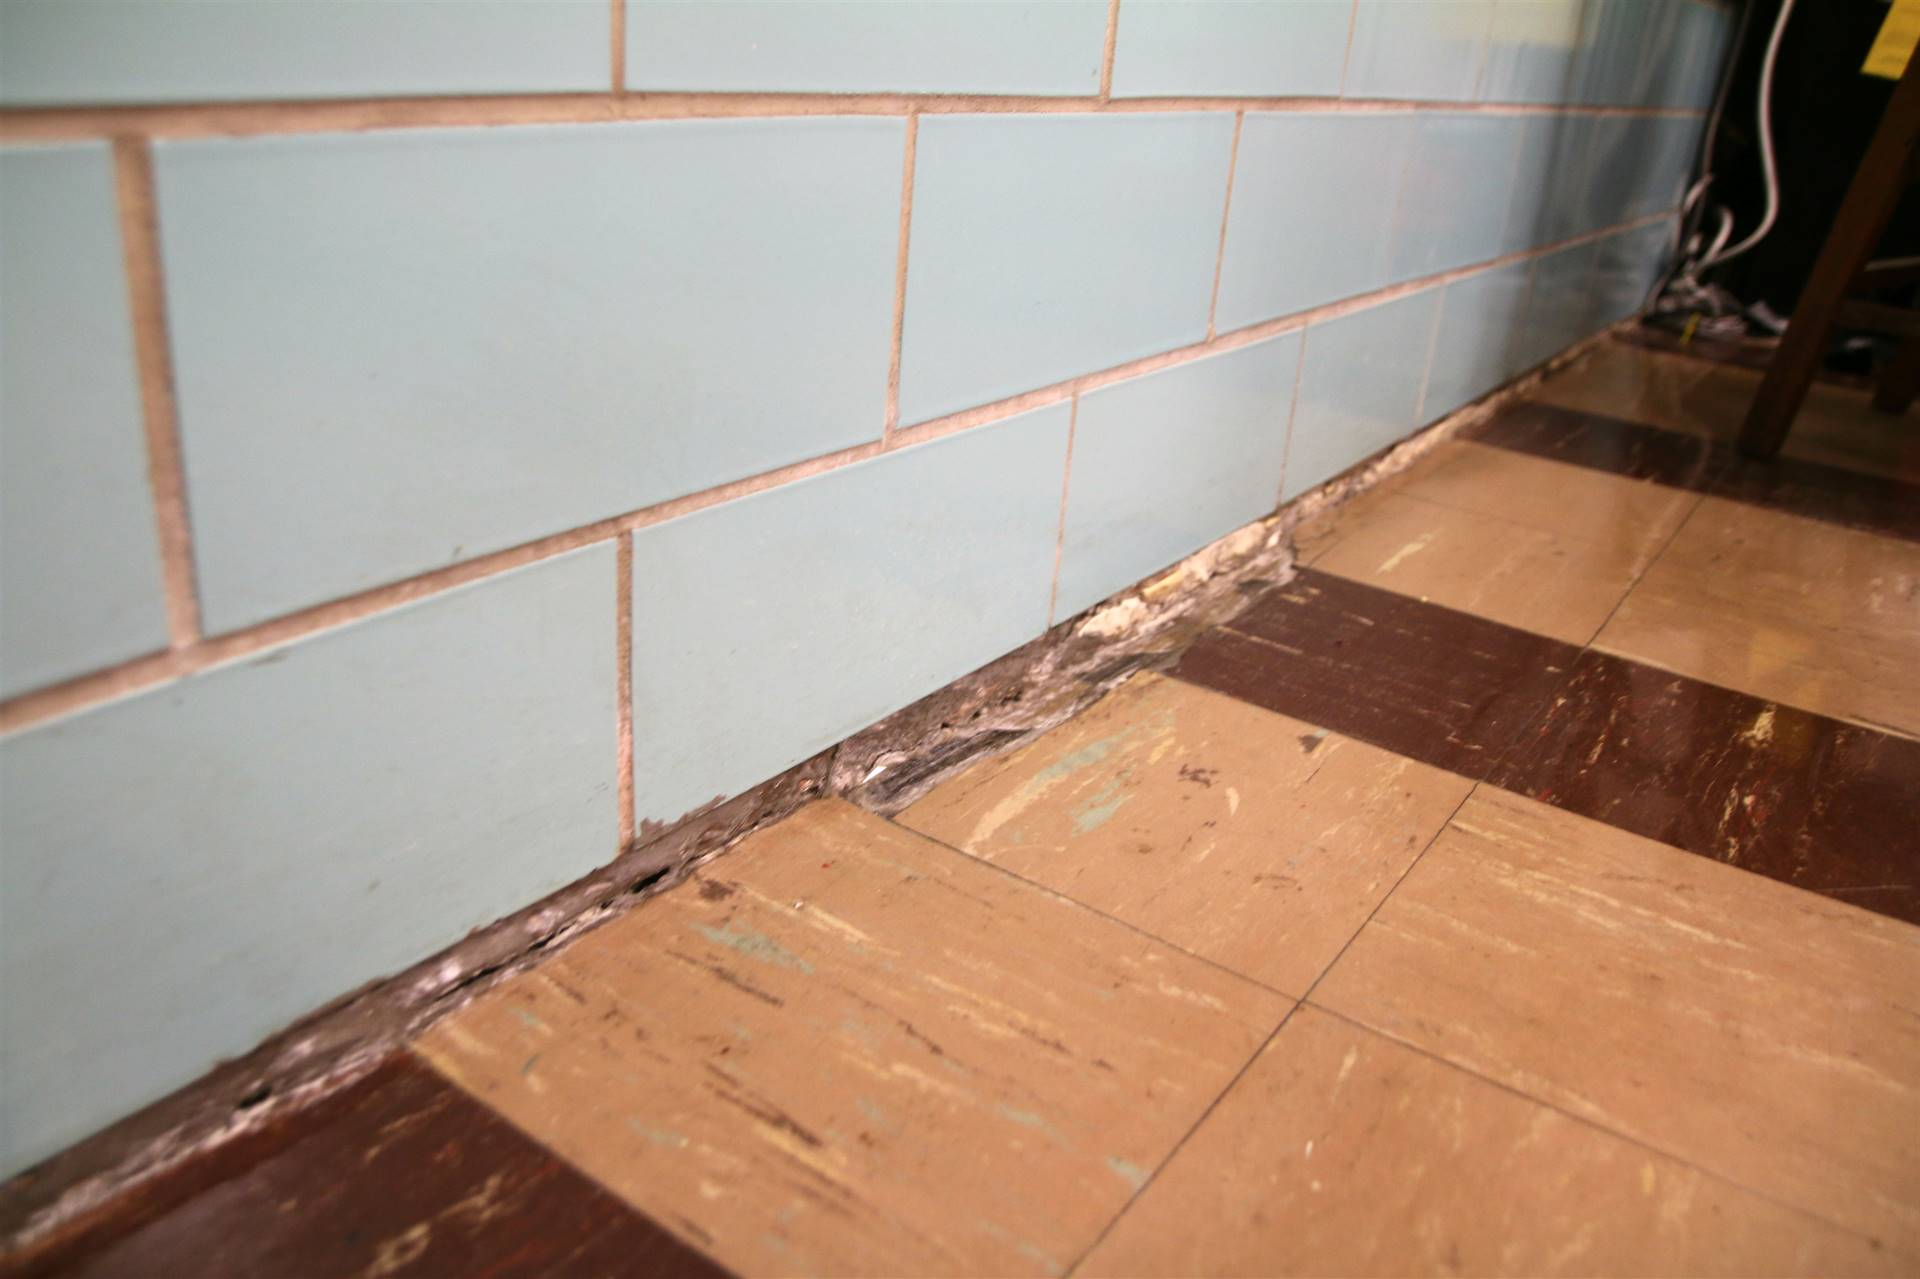 FHS wall/floor separation